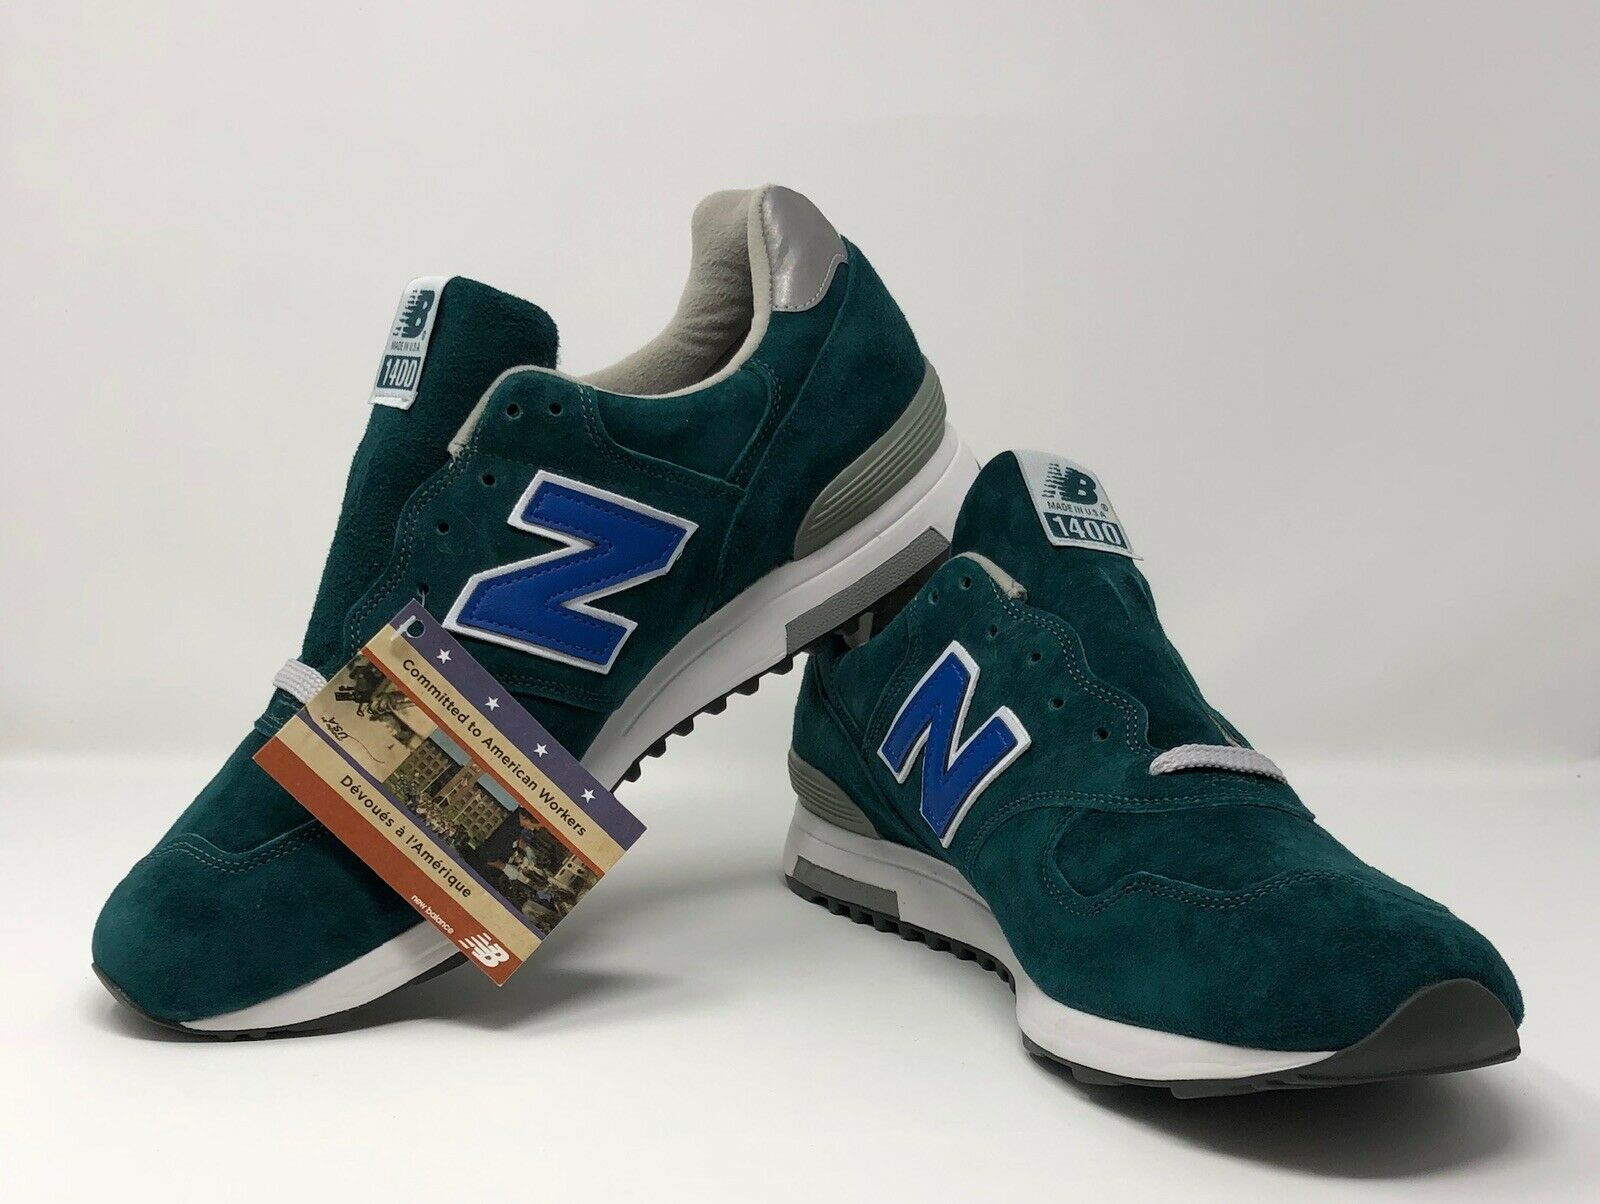 New Balance 1400 Daim Taille 13 Eververt J Crew made in USA M1400JJ2 RARE